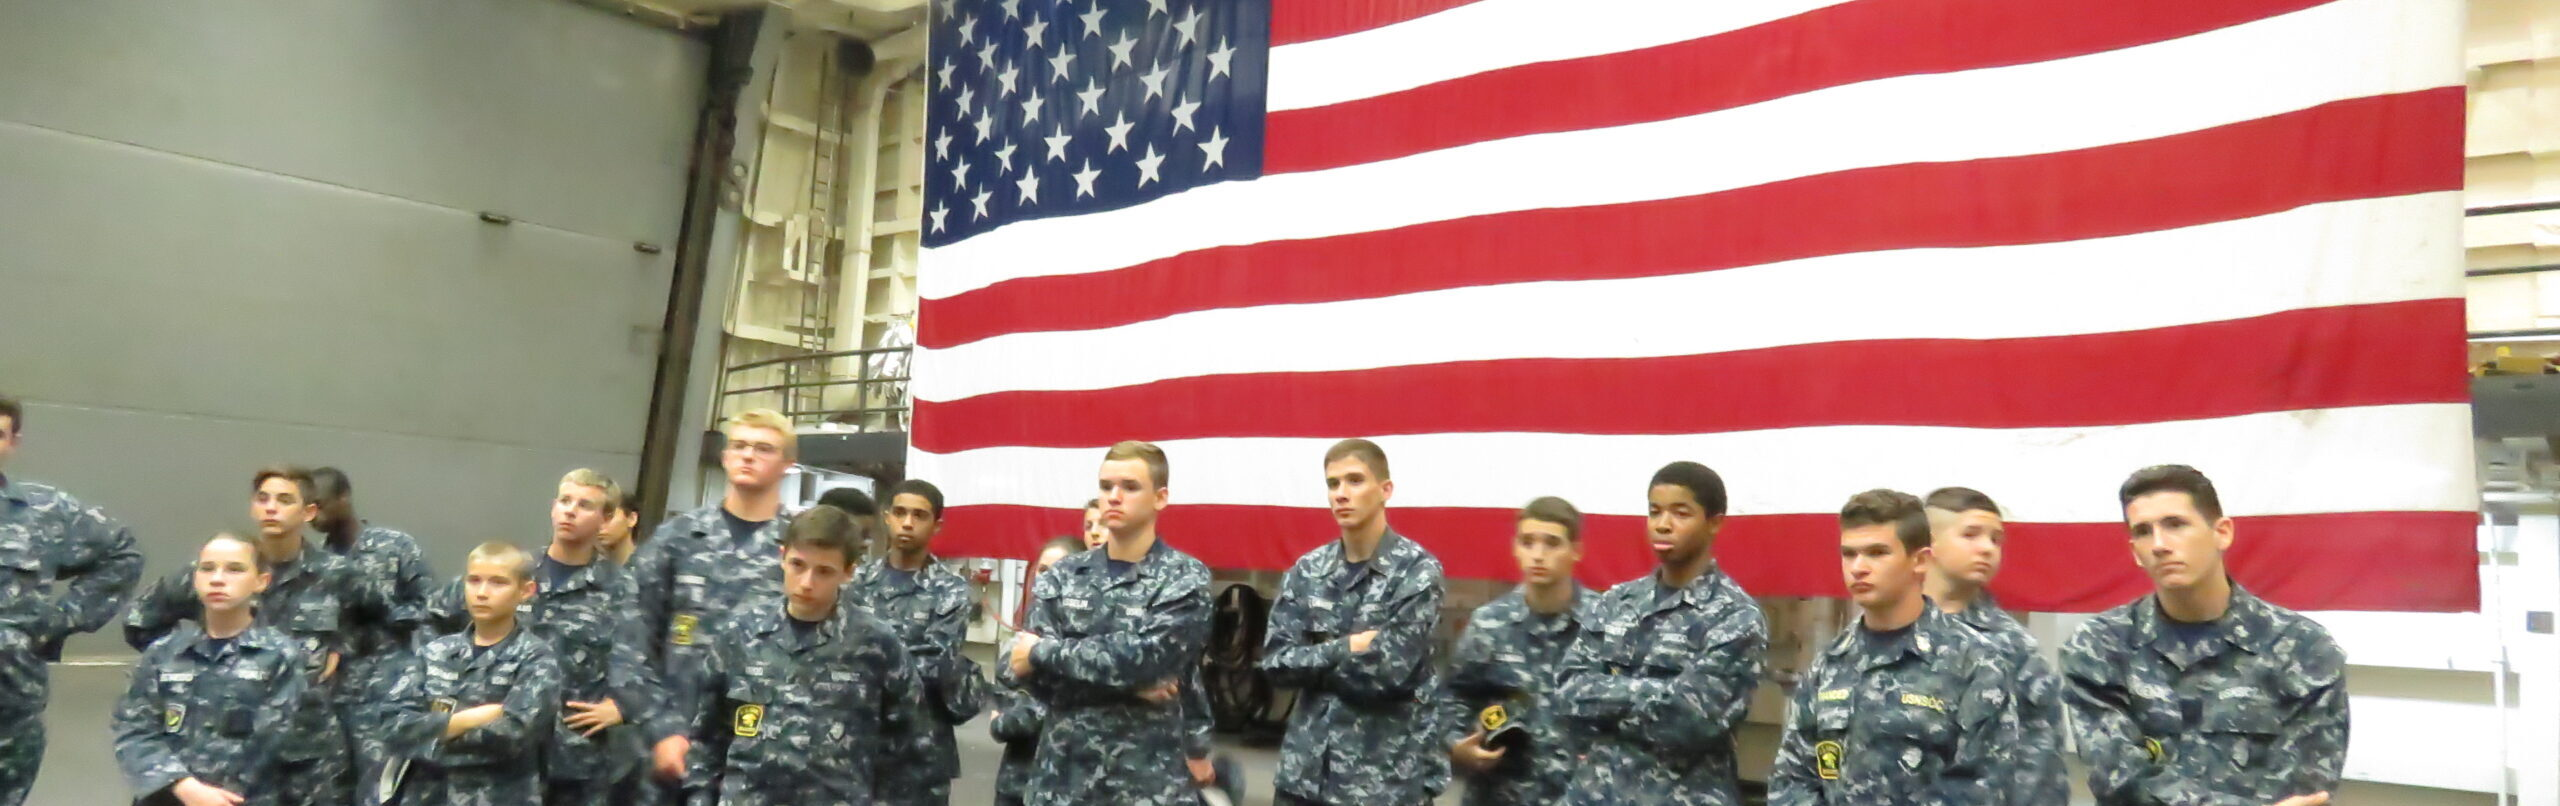 Sea Cadets on the equipment deck of USS New York